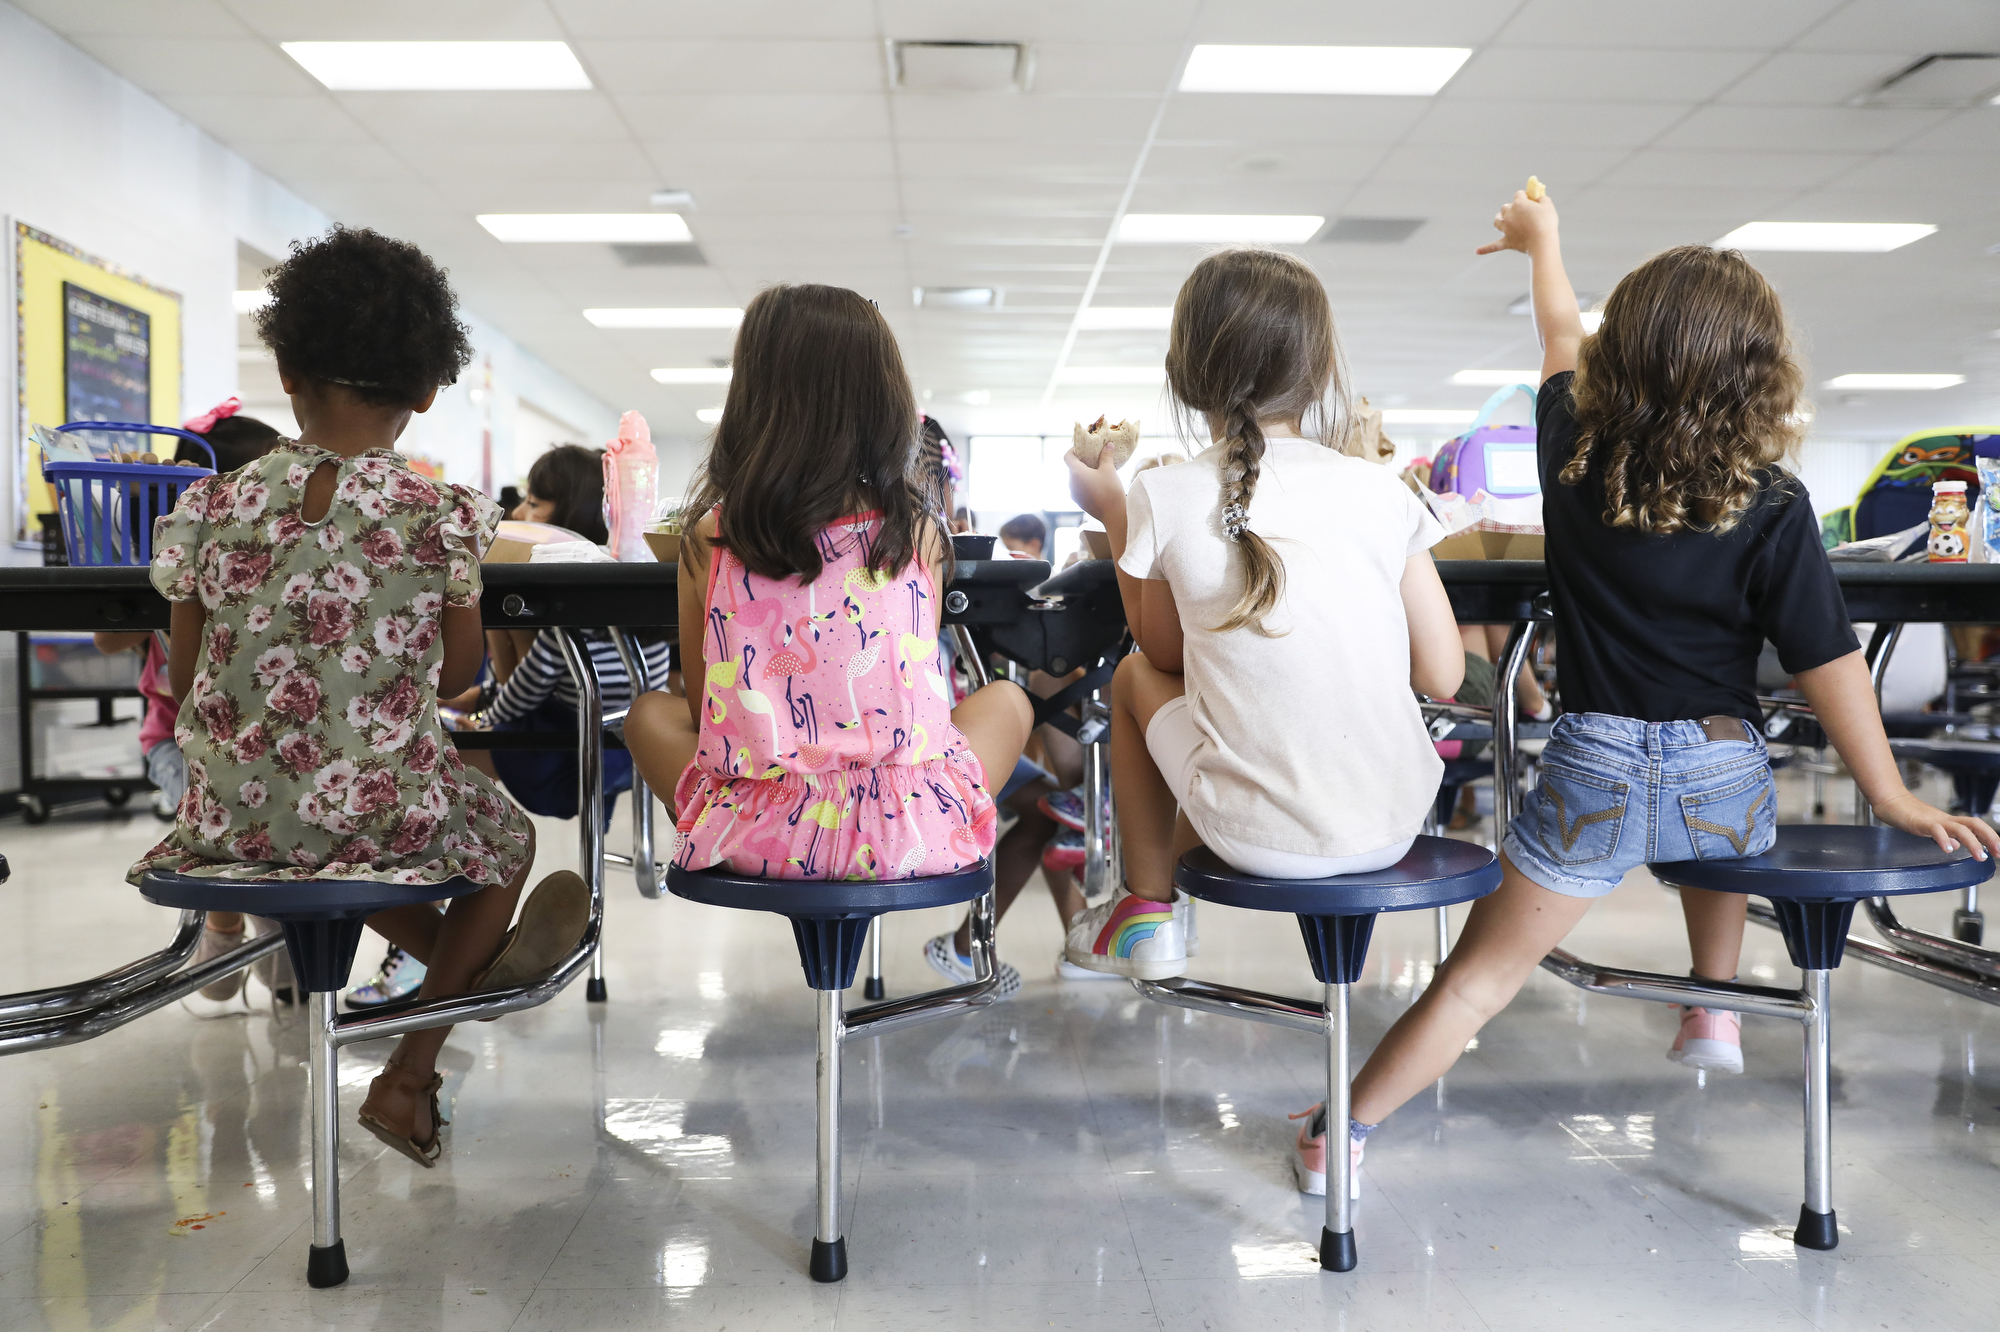 Students eat their lunch in the cafeteria at Doby Elementary School in Apollo Beach, Florida.